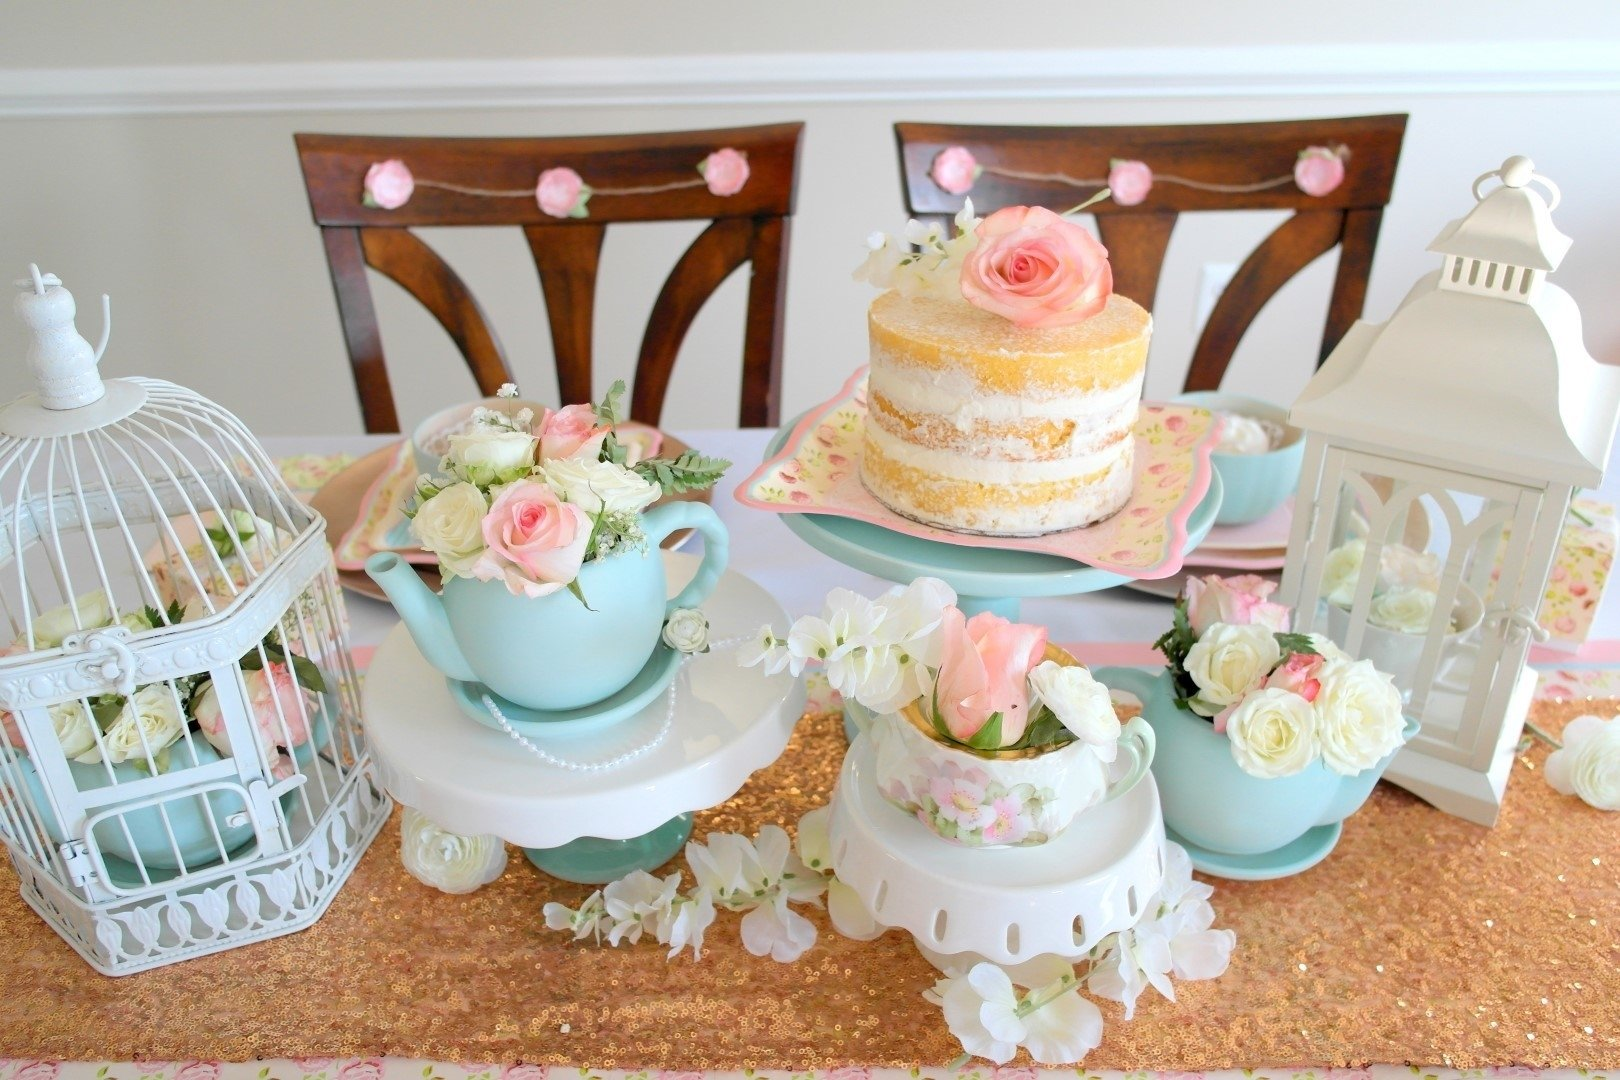 10 Beautiful Tea Party Bridal Shower Ideas diy bride vintage tea party bridal shower 2020